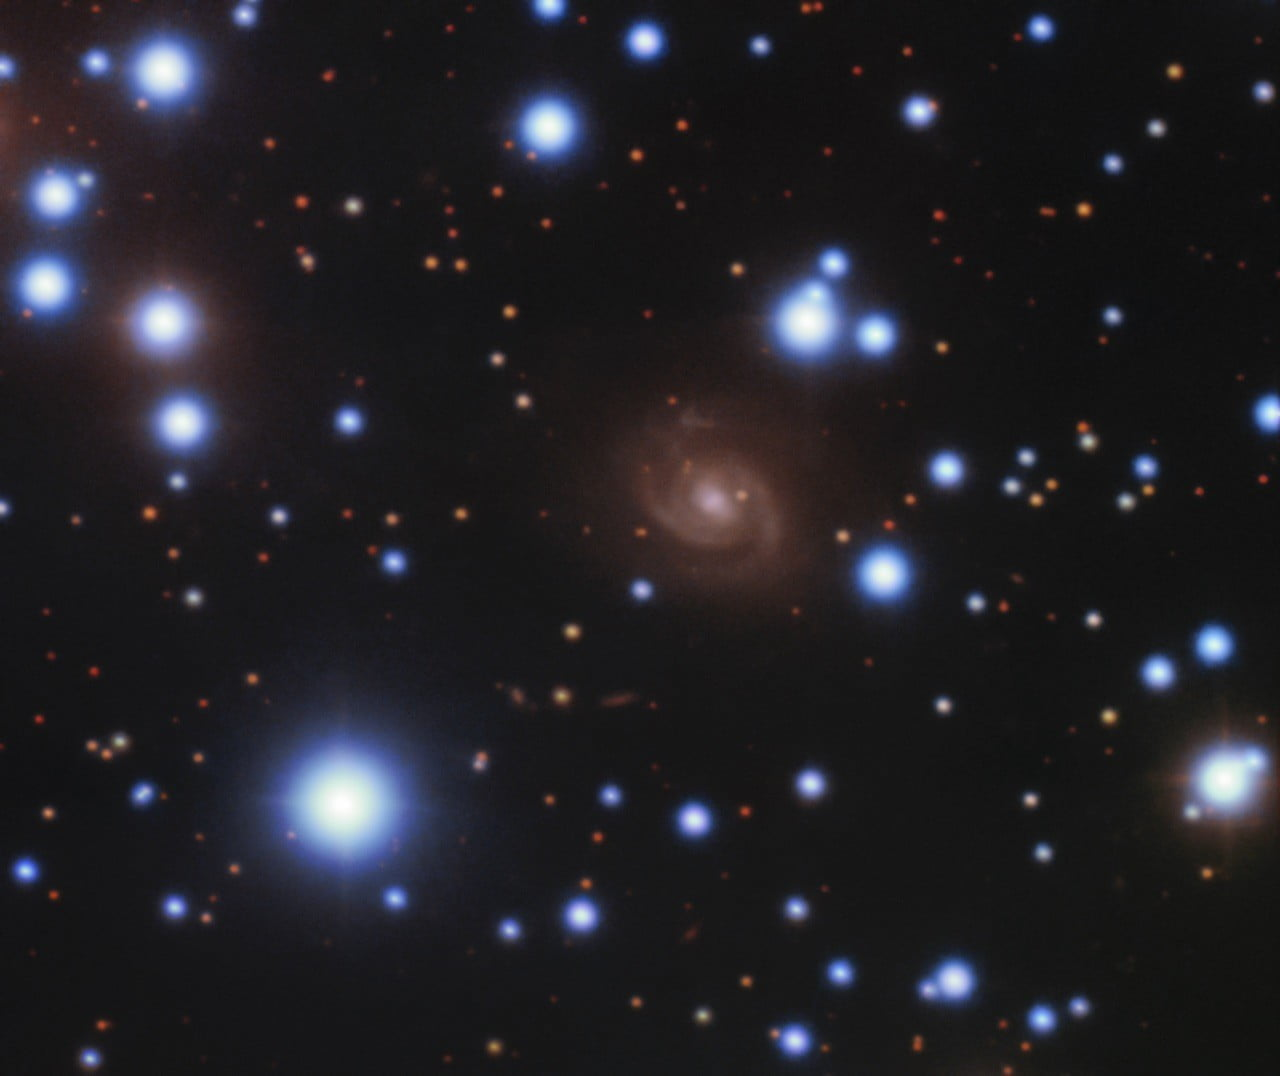 Image of the host galaxy of FRB 180916 (center) acquired with the 8-meter Gemini-North telescope of NSF's OIR Lab on Hawaii's Maunakea.